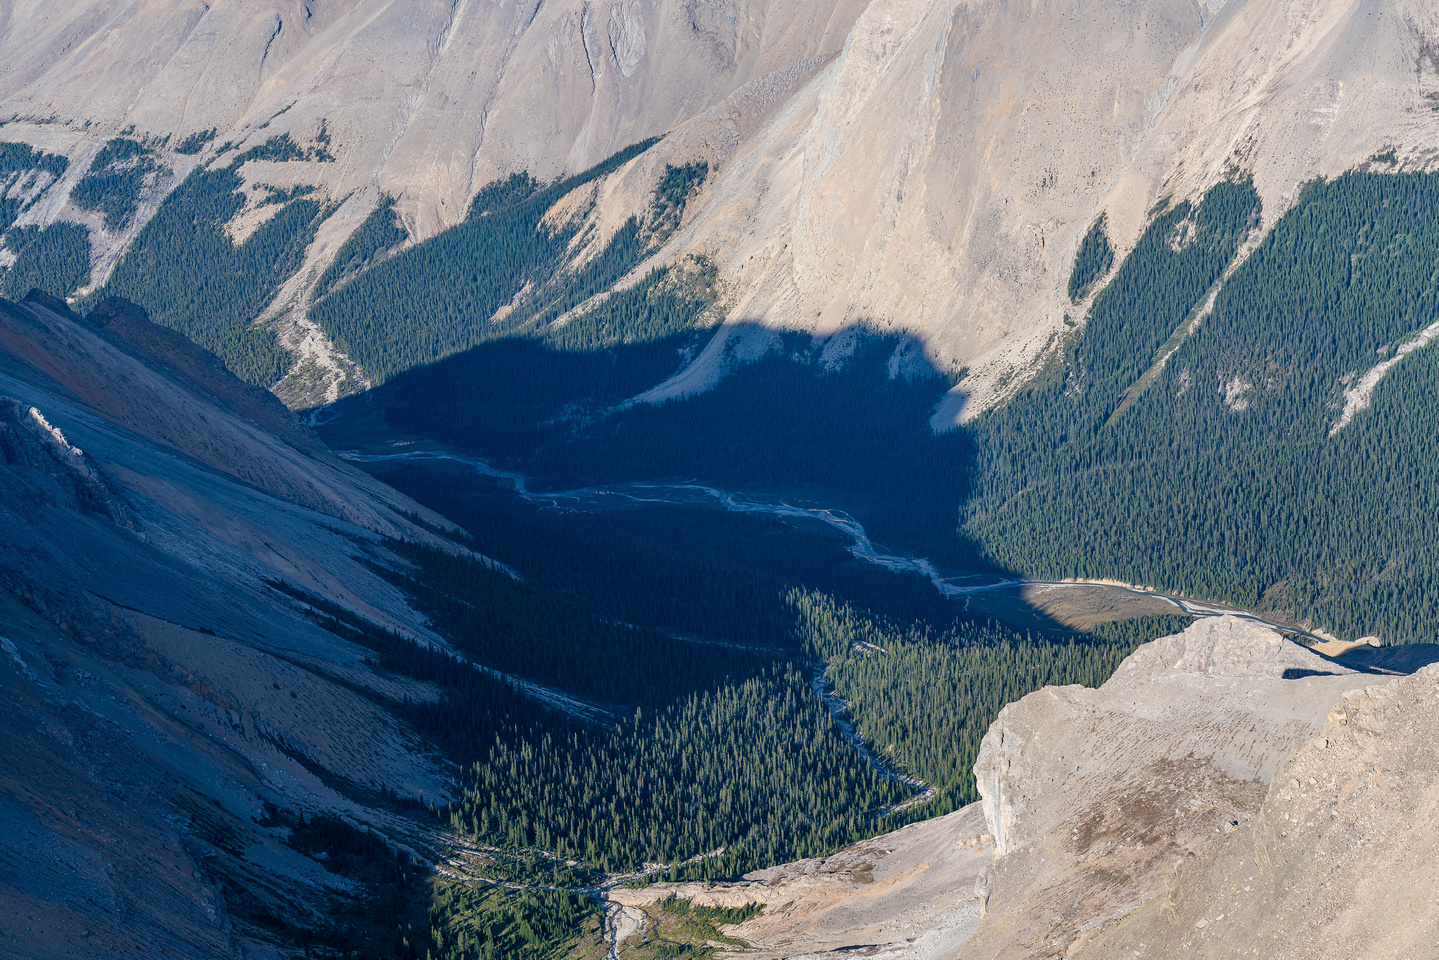 The Roaring Creek Valley sits hundreds of meters below to the east.